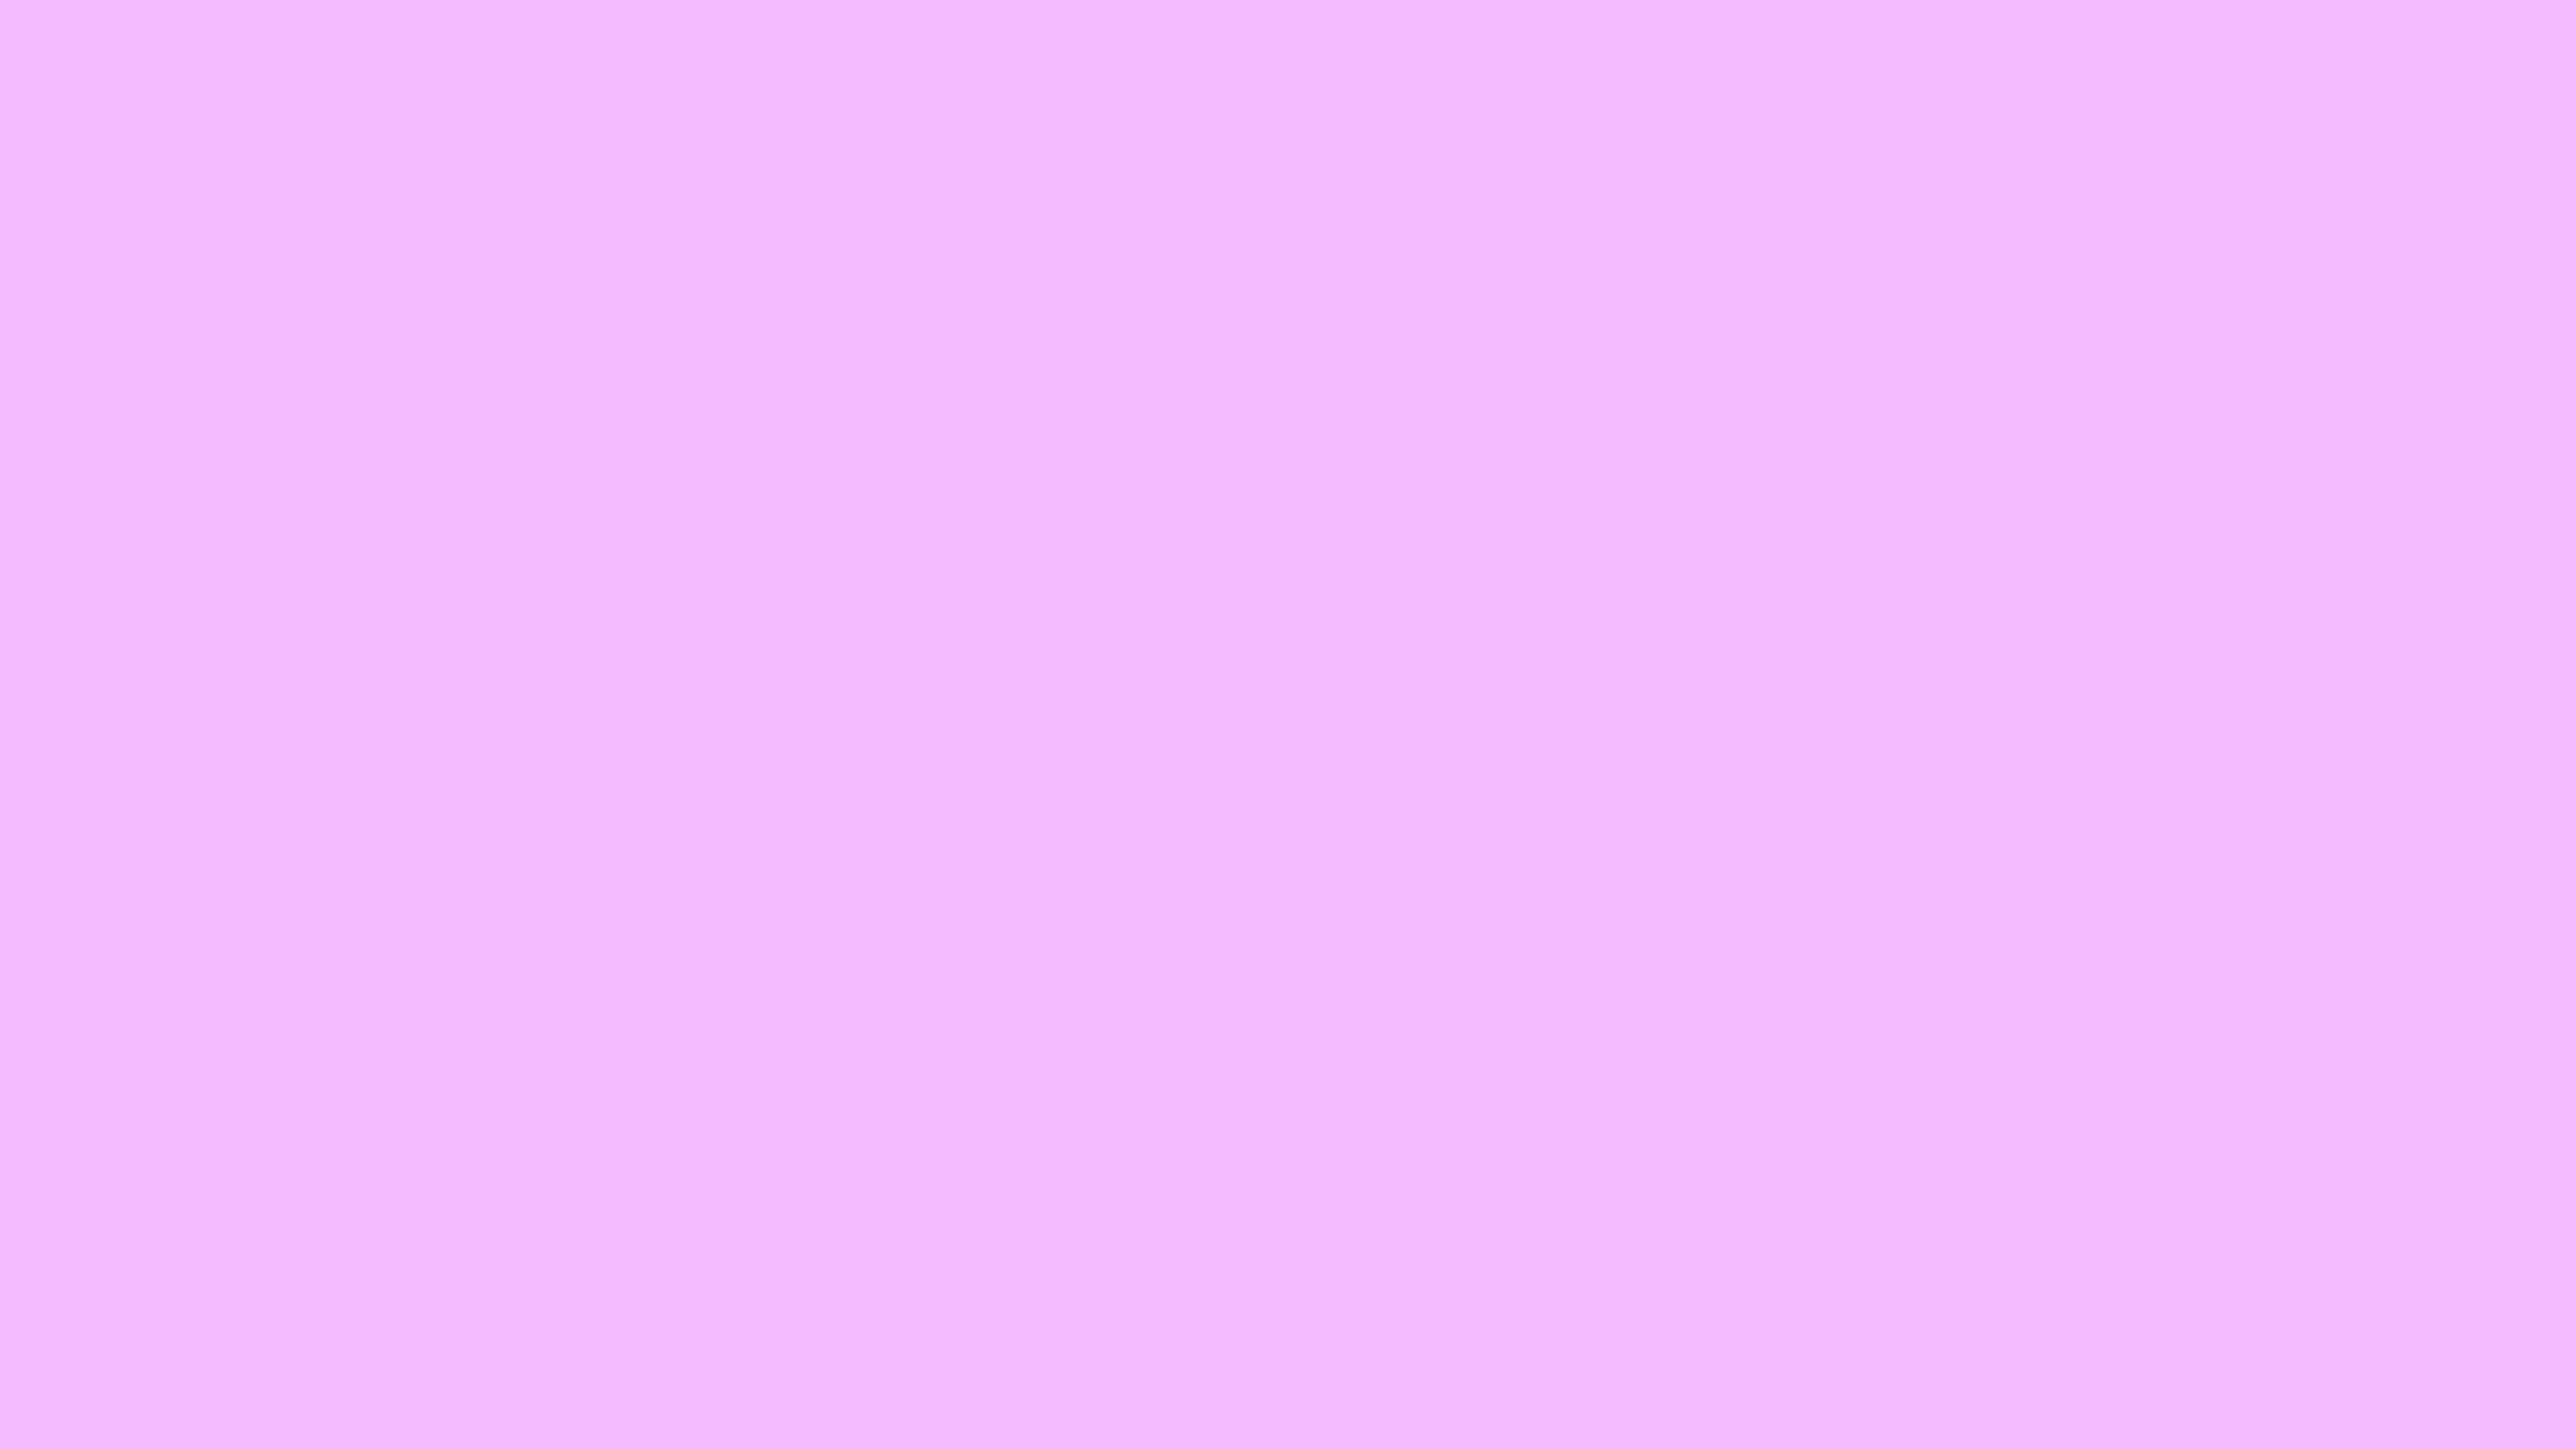 3840x2160 Electric Lavender Solid Color Background